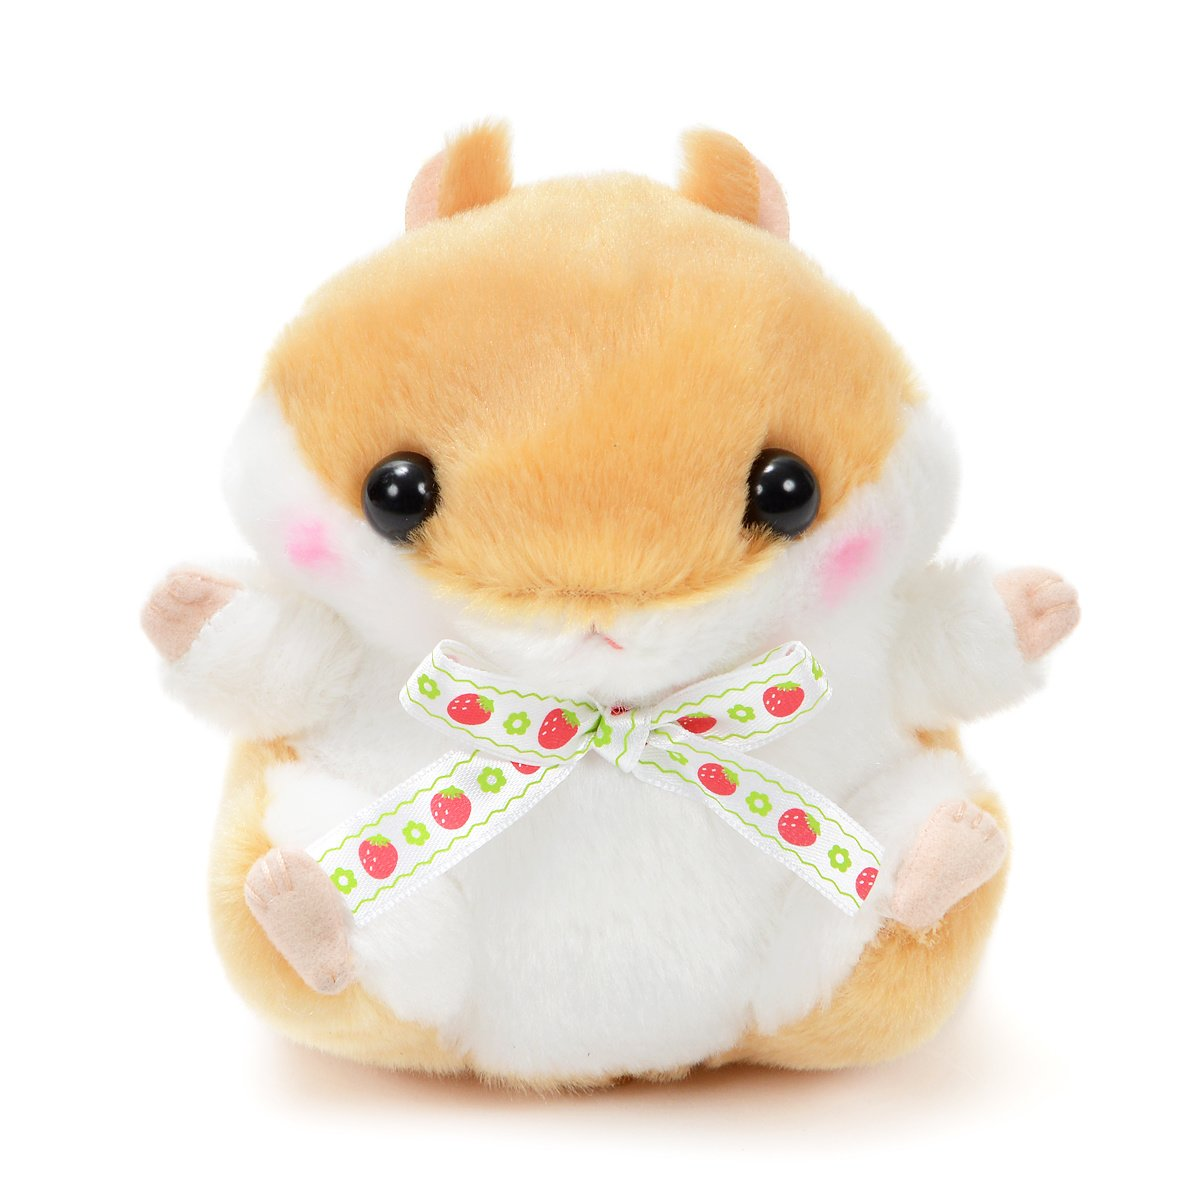 Plush Hamster, Amuse, Coroham Coron, Ichigo Hamster Plush Collection Coron, Light Brown, 5 Inches